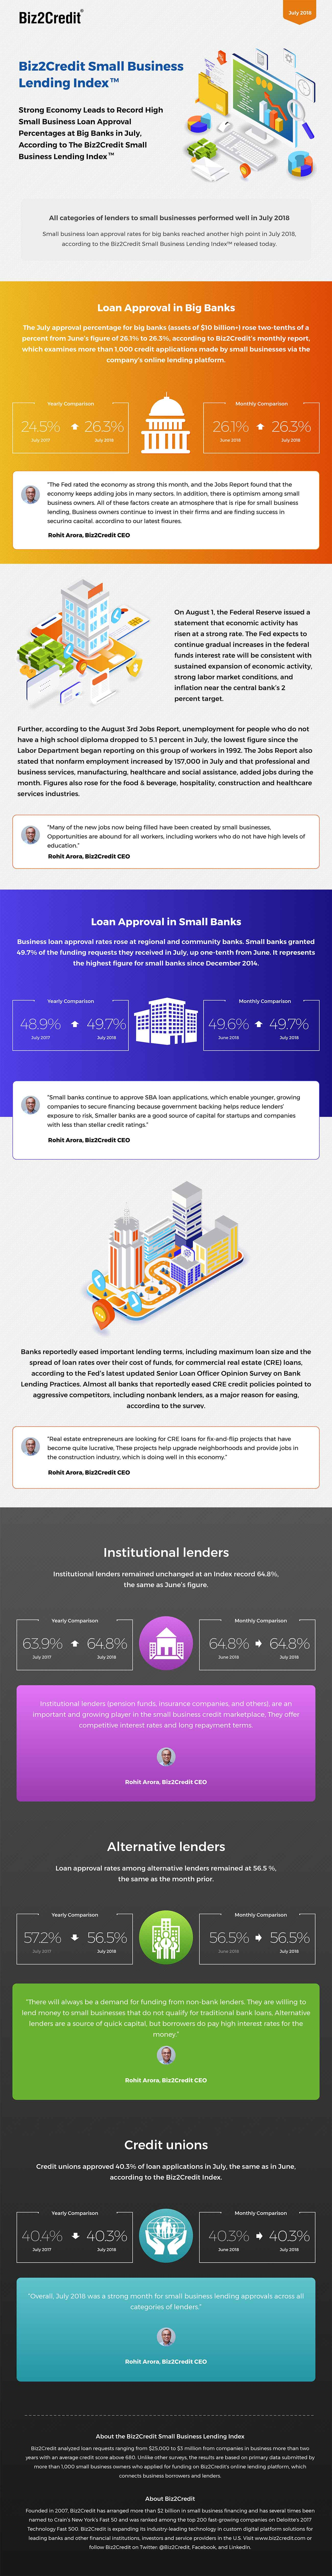 july18 Lending Index Infographic